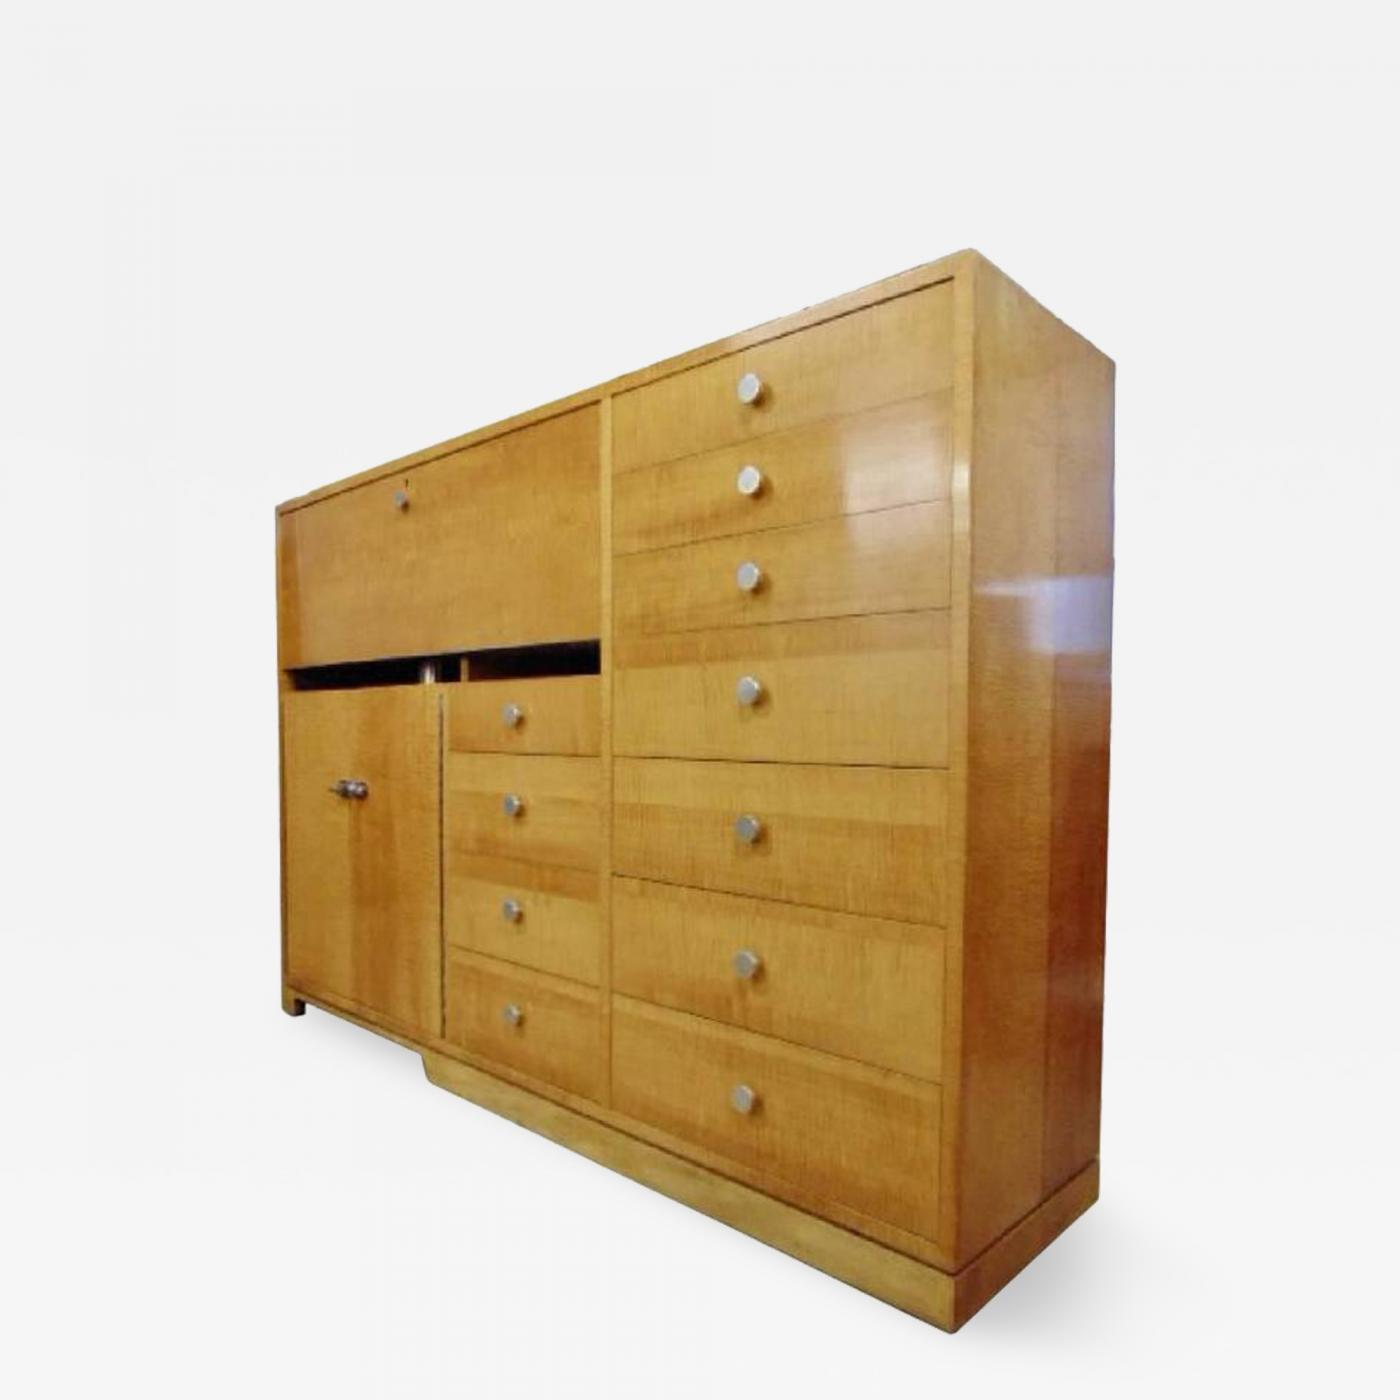 Listings / Furniture / Case Pieces U0026 Storage / Cabinets